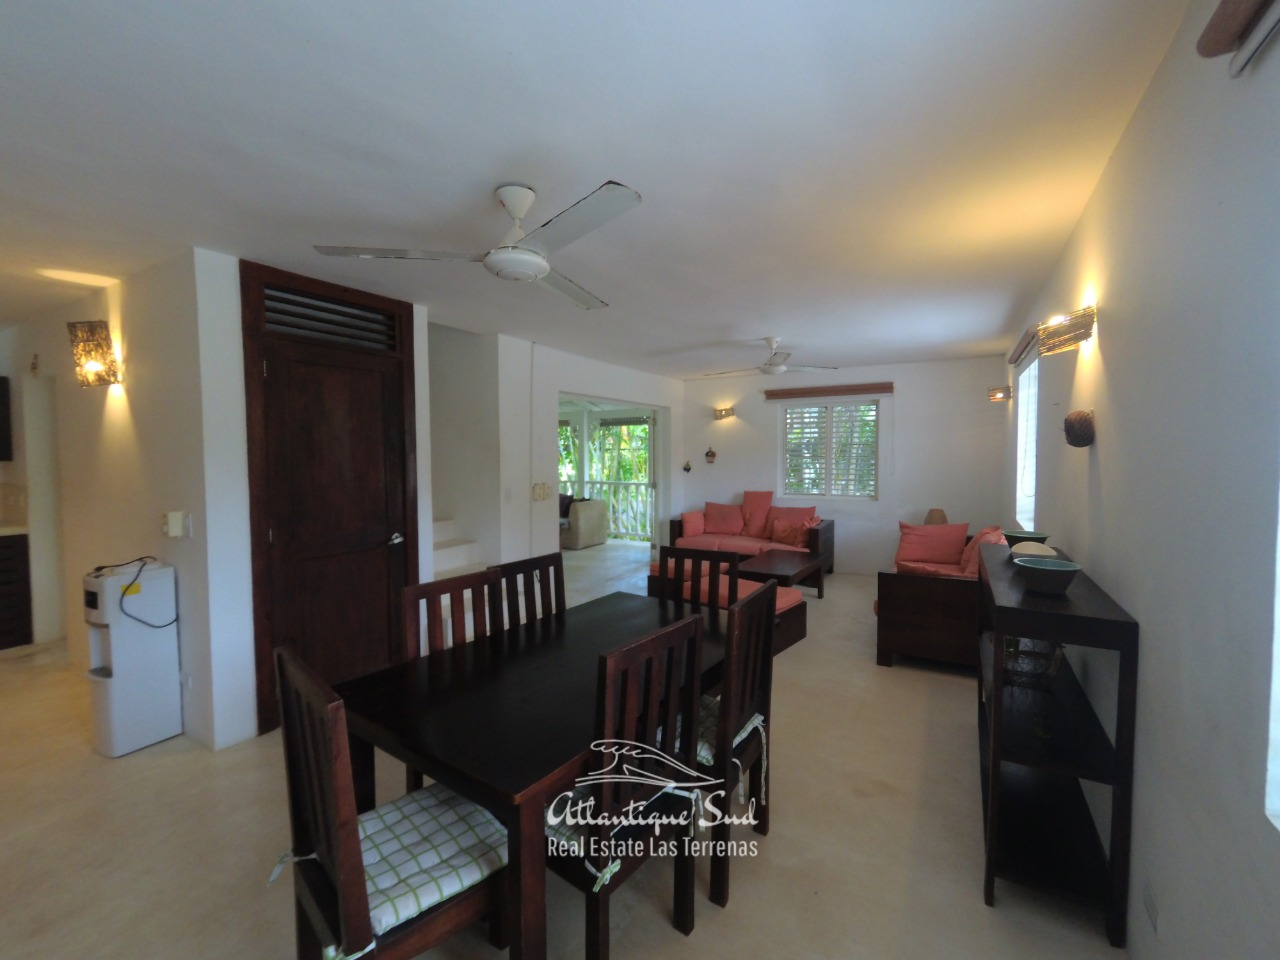 Villa for sale steps from the beach in las terrenas 16.jpeg